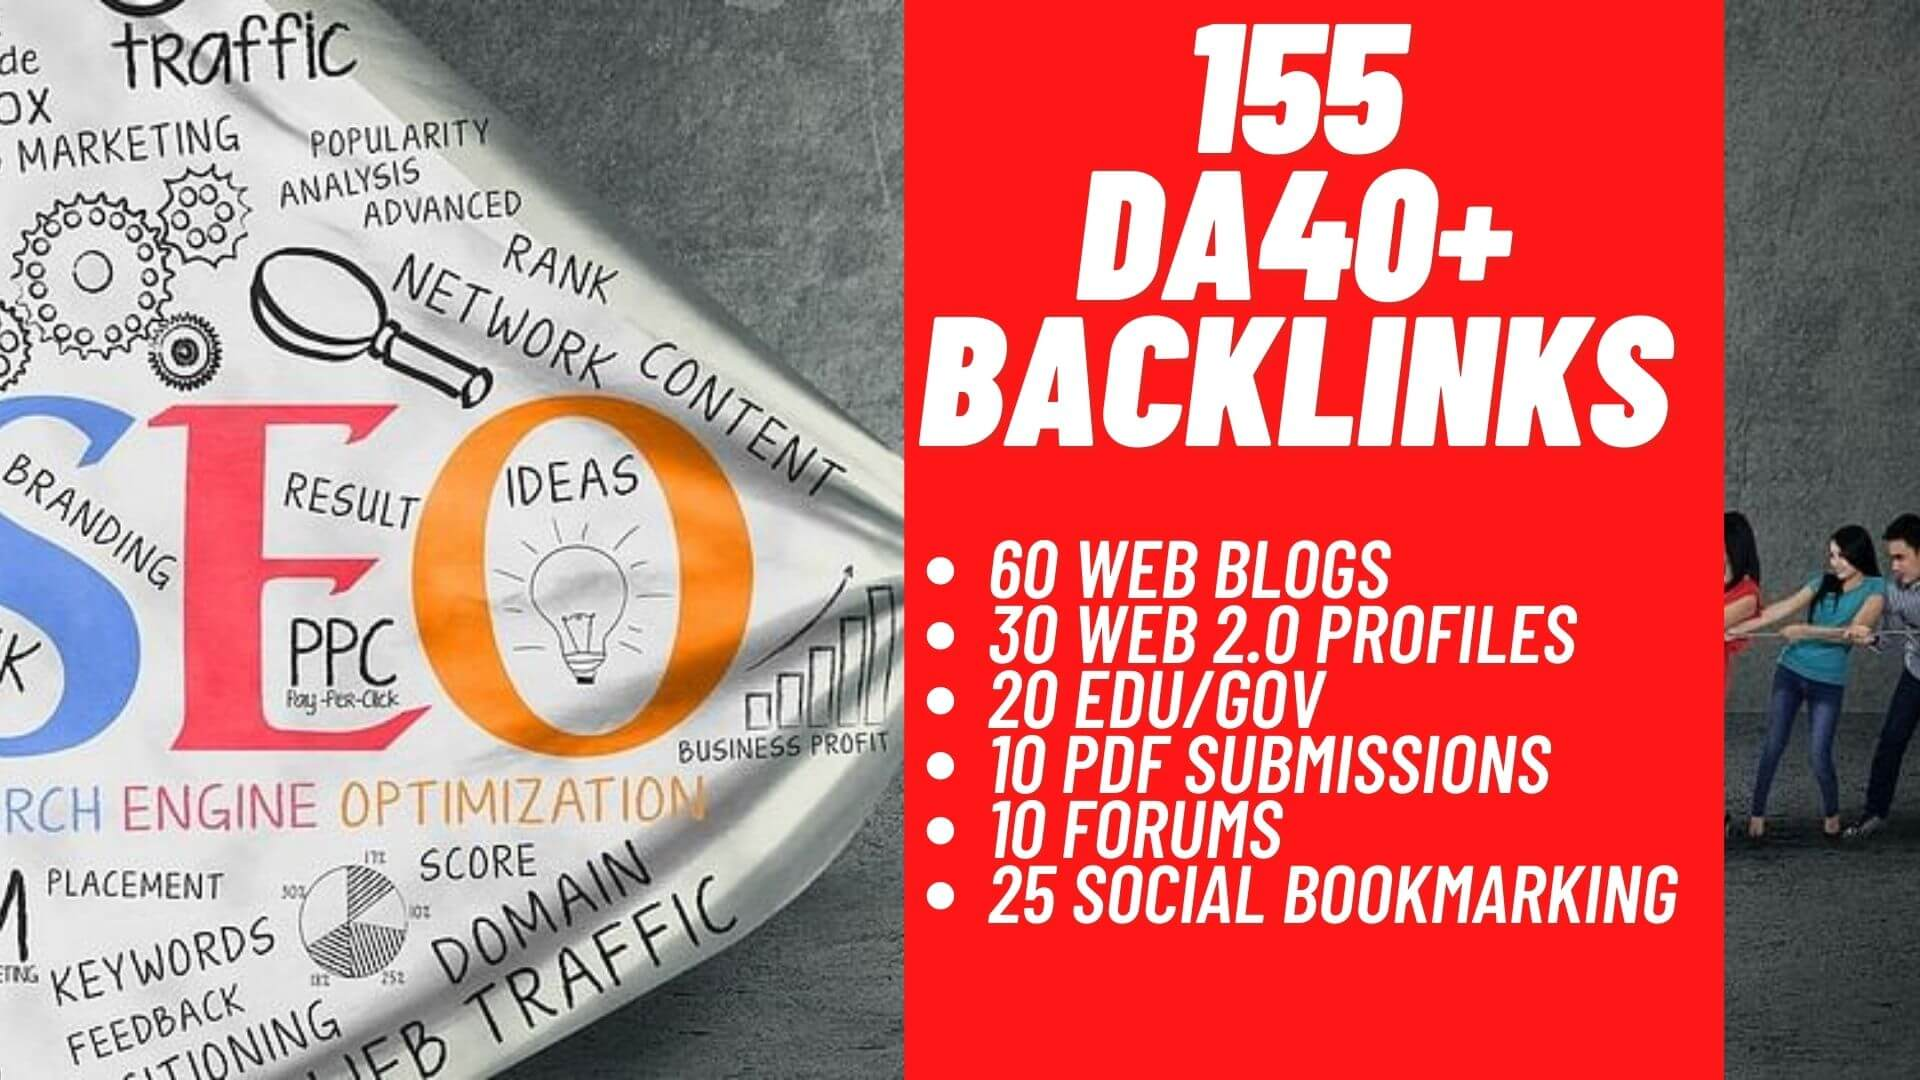 Manually 155 DA40+ Backlinks 60 web blogs 30 Web 2.0 Profiles 20 Edu/Gov 10 pdf 10 forums 25